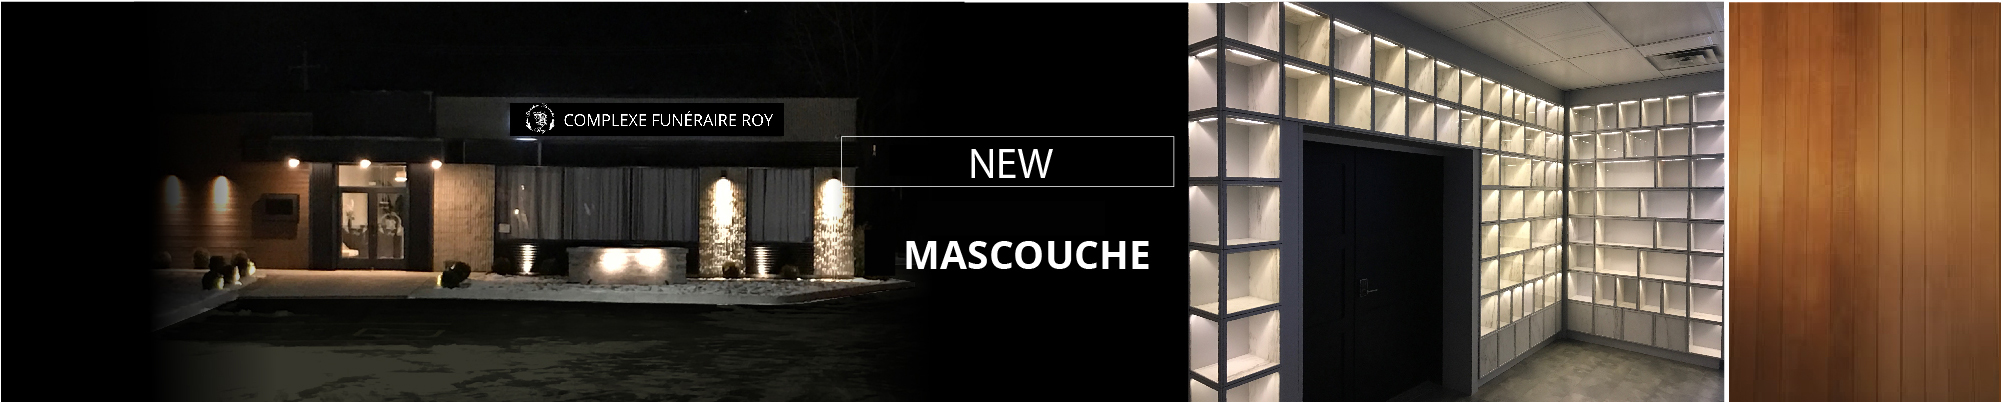 new.-mascouche-01-02